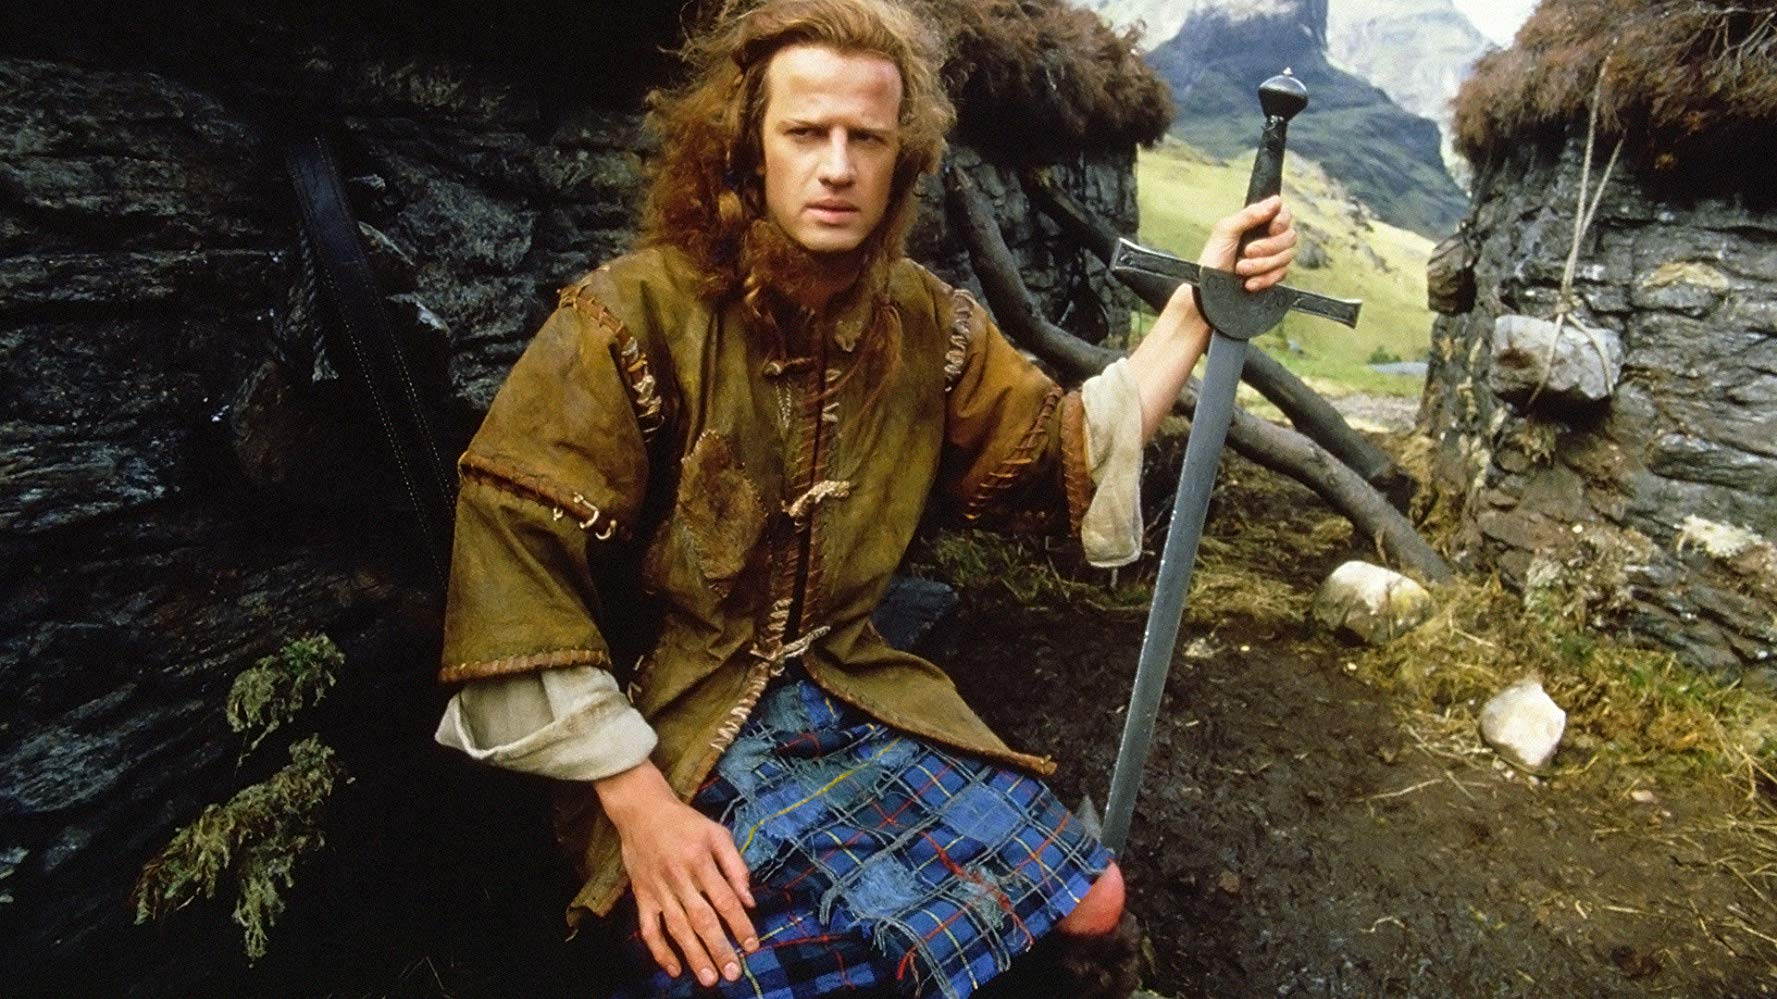 Christopher Lambert in Highlander